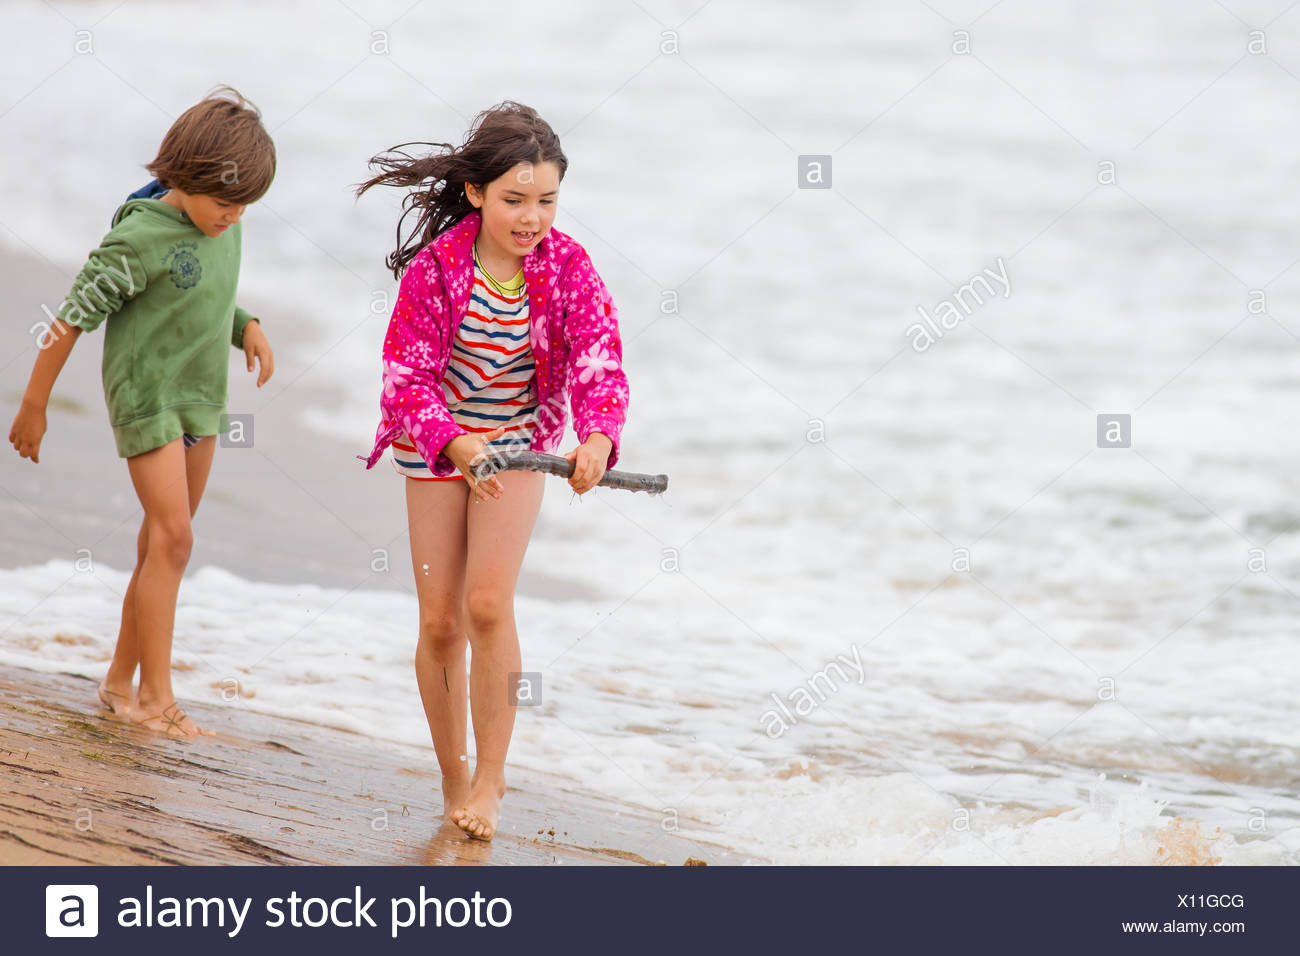 Boy and girl walking on the beach - Stock Image